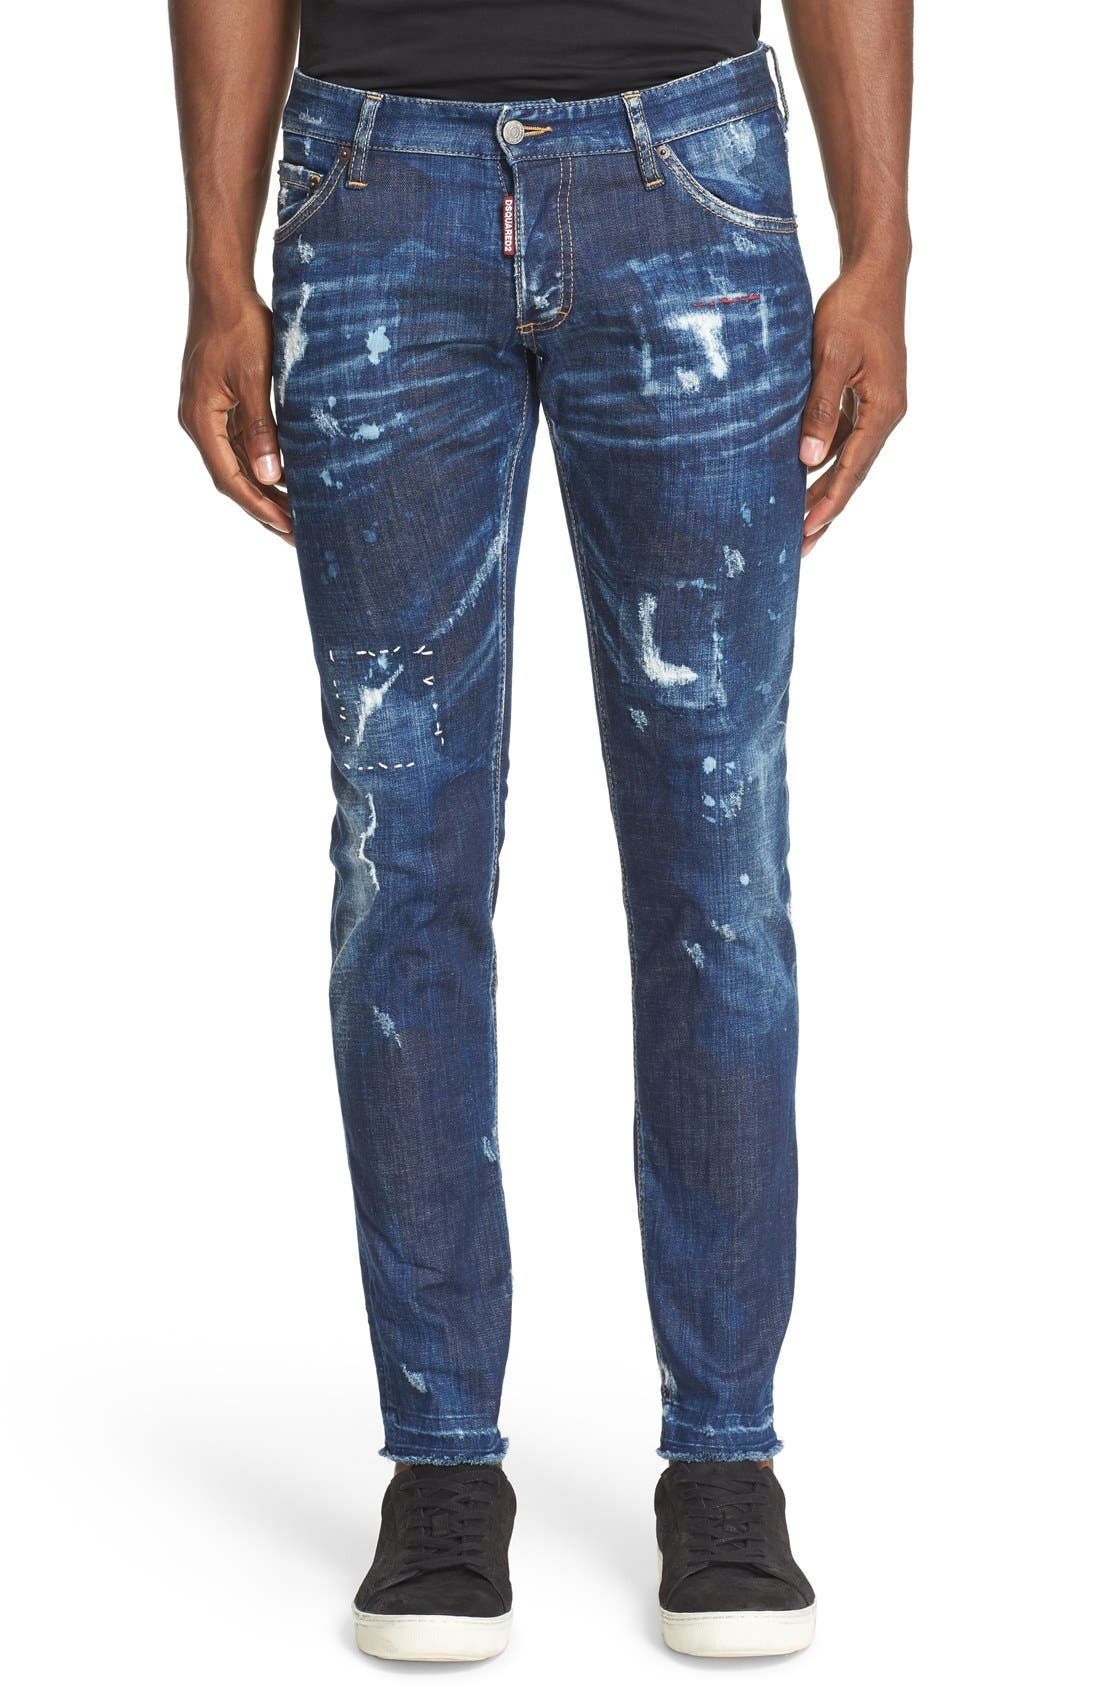 Alternate Image 1 Selected - Dsquared2 'Clement American Pie' Distressed Fray Hem Skinny Jeans